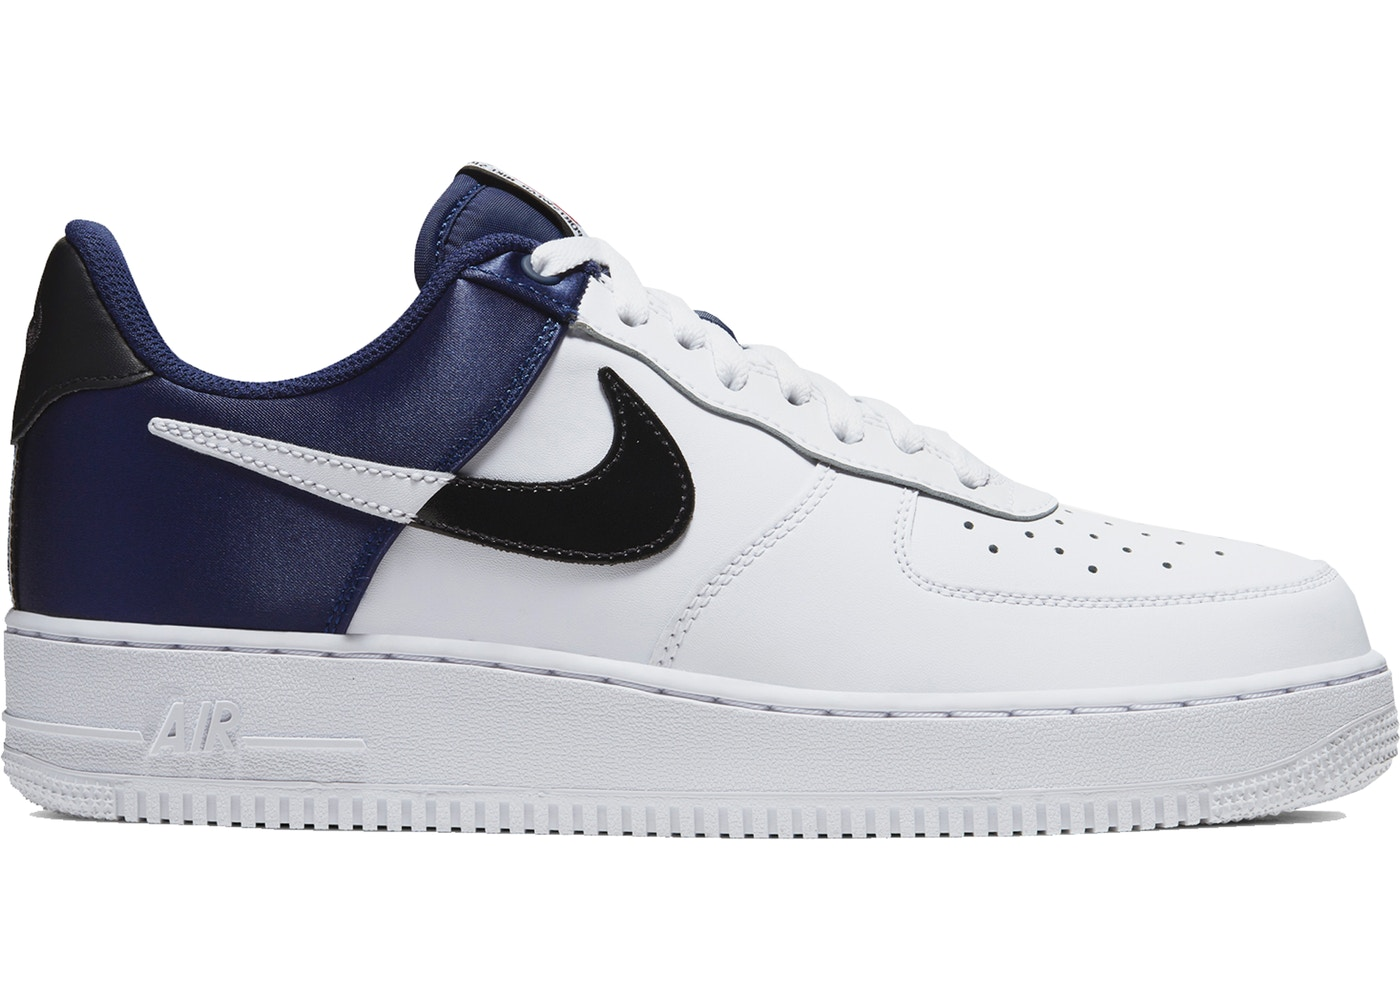 Nike Air Force 1 Low NBA City Edition White Navy - Sneakers